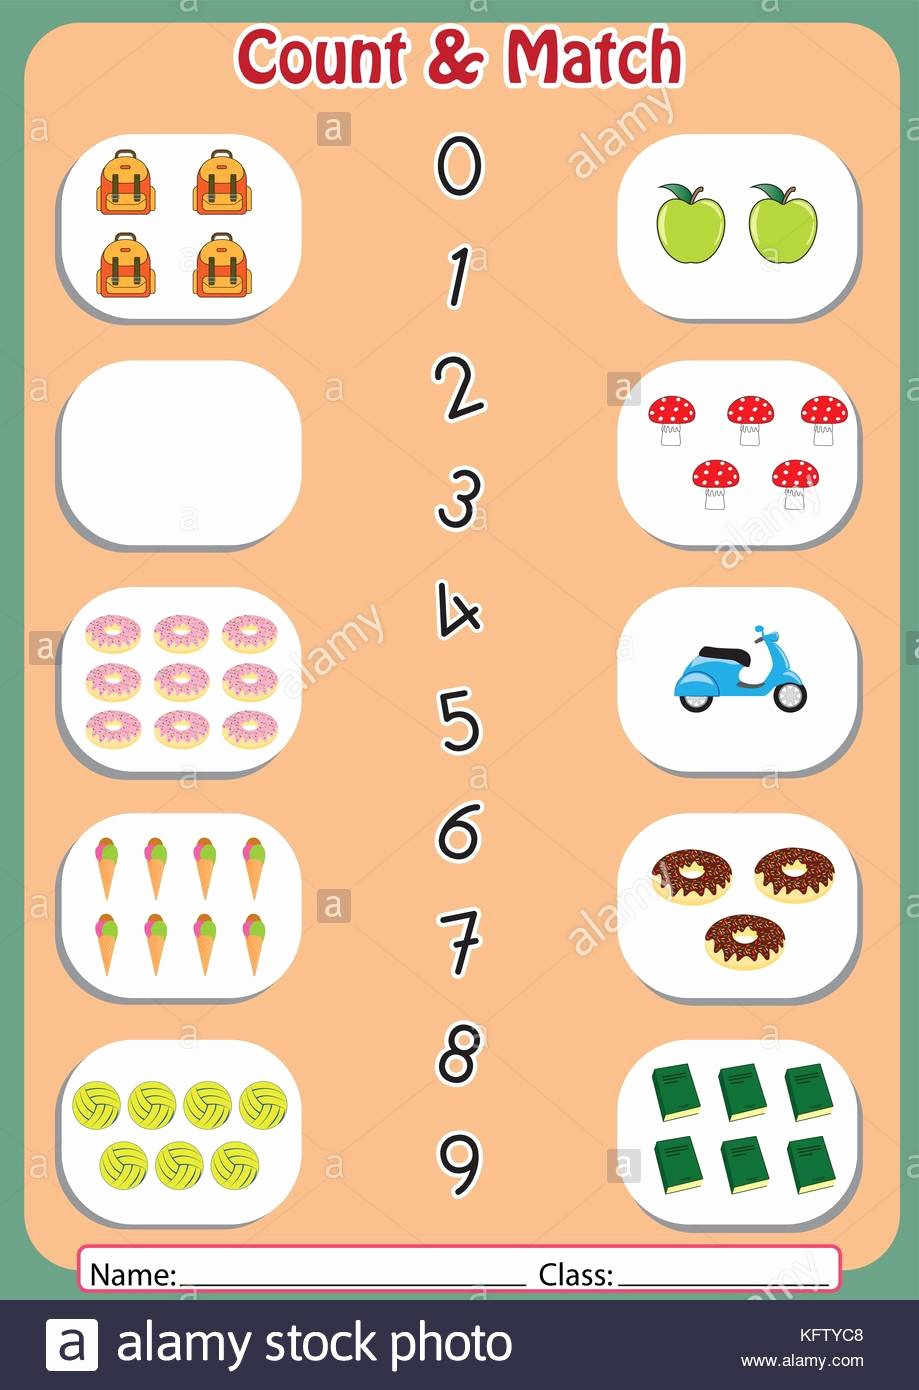 Matching Numbers Worksheets for Preschoolers Lovely Match the Numbers to Objects Worksheet for Preschool Stock